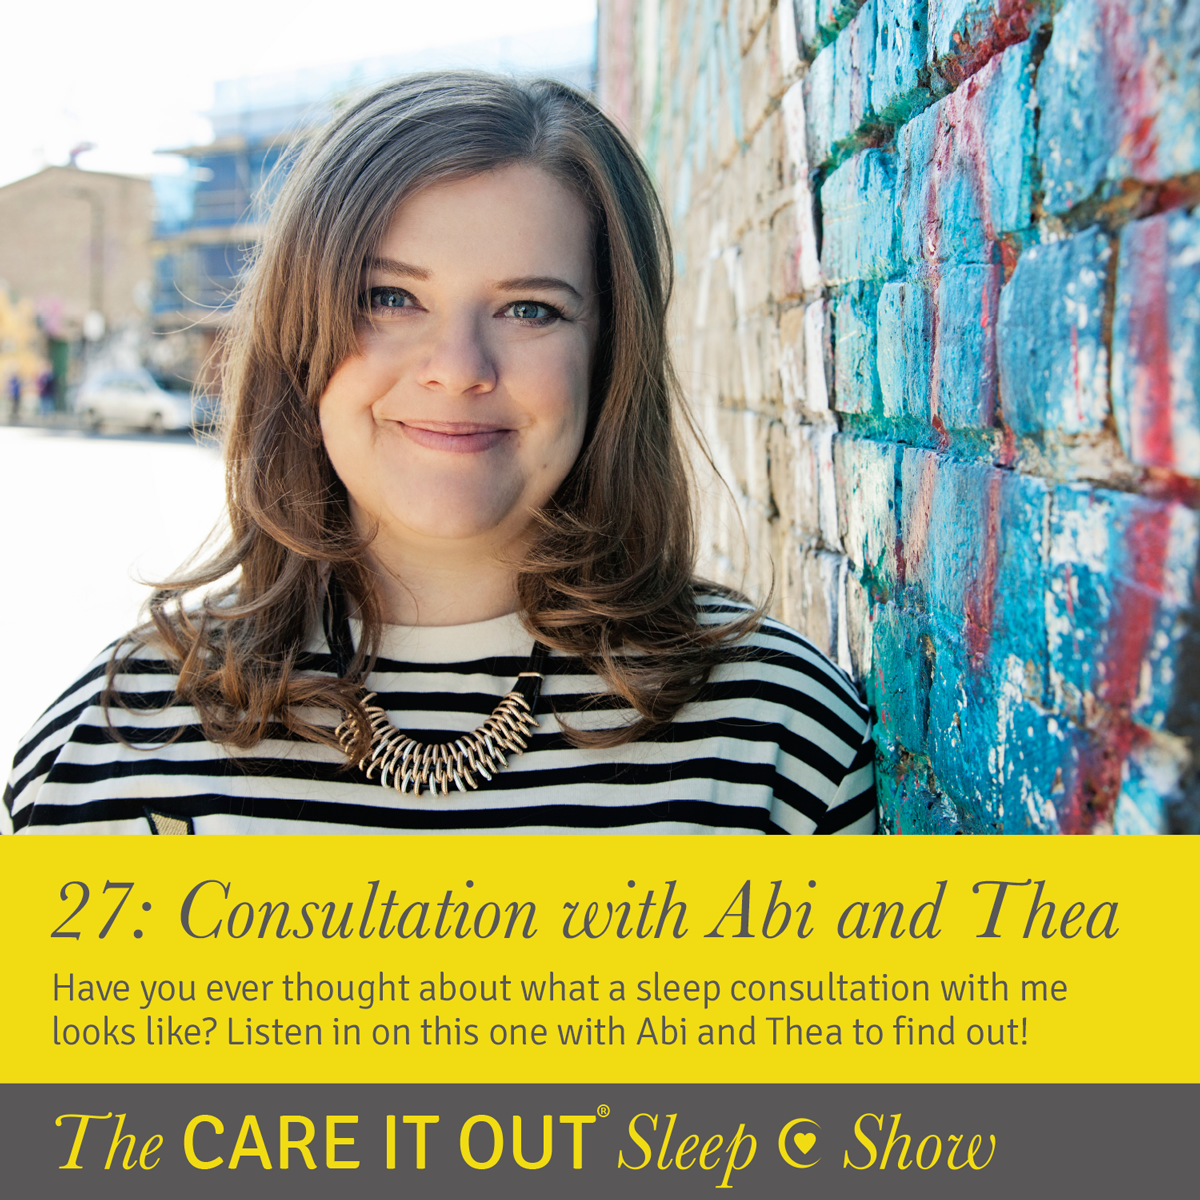 Episode 27: Care It Out Sleep consultation with Abi and Thea